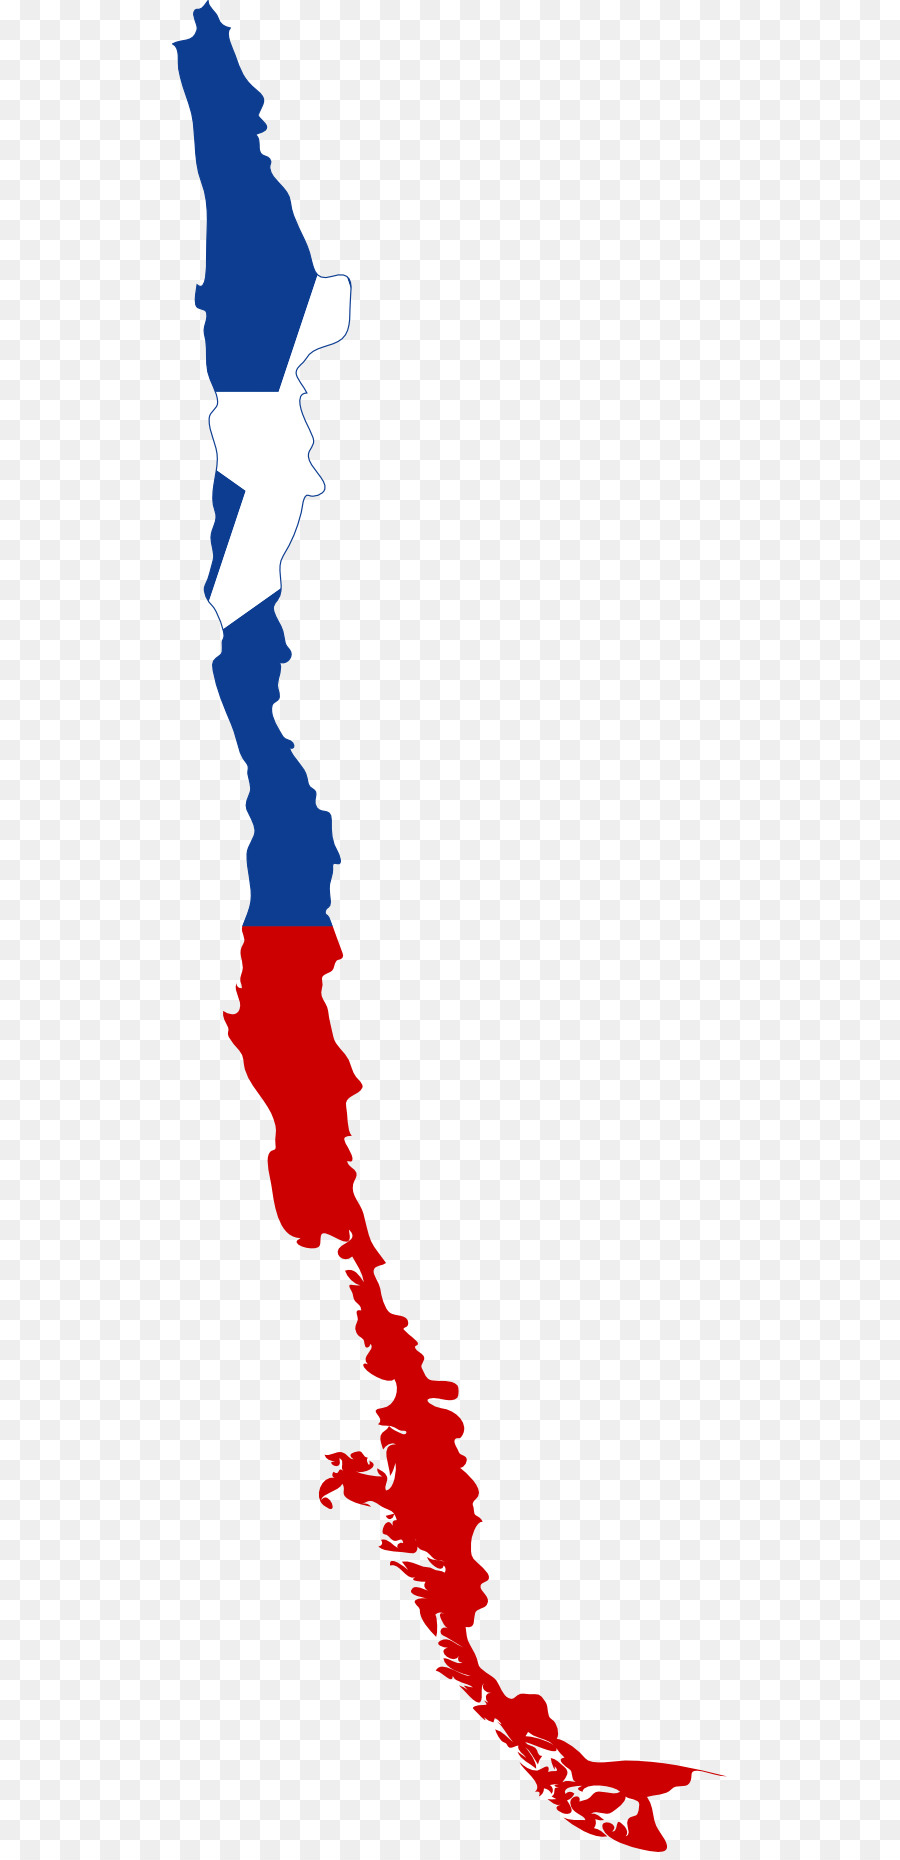 900x1860 Flag Of Chile Map Wikimedia Commons